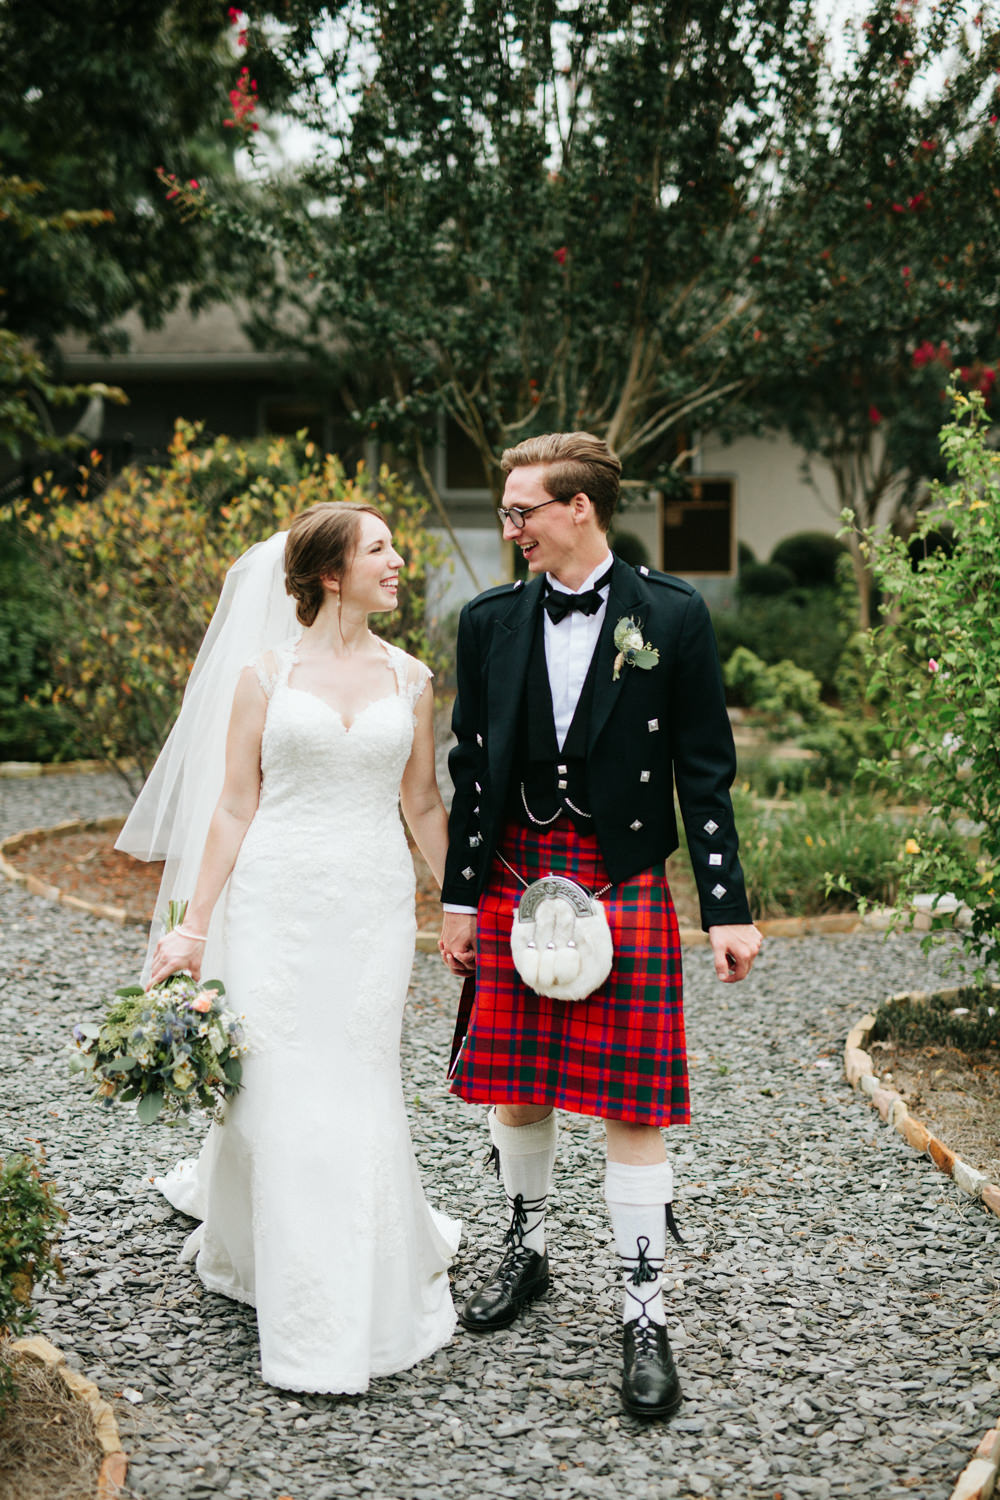 scottishwedding-2060.jpg